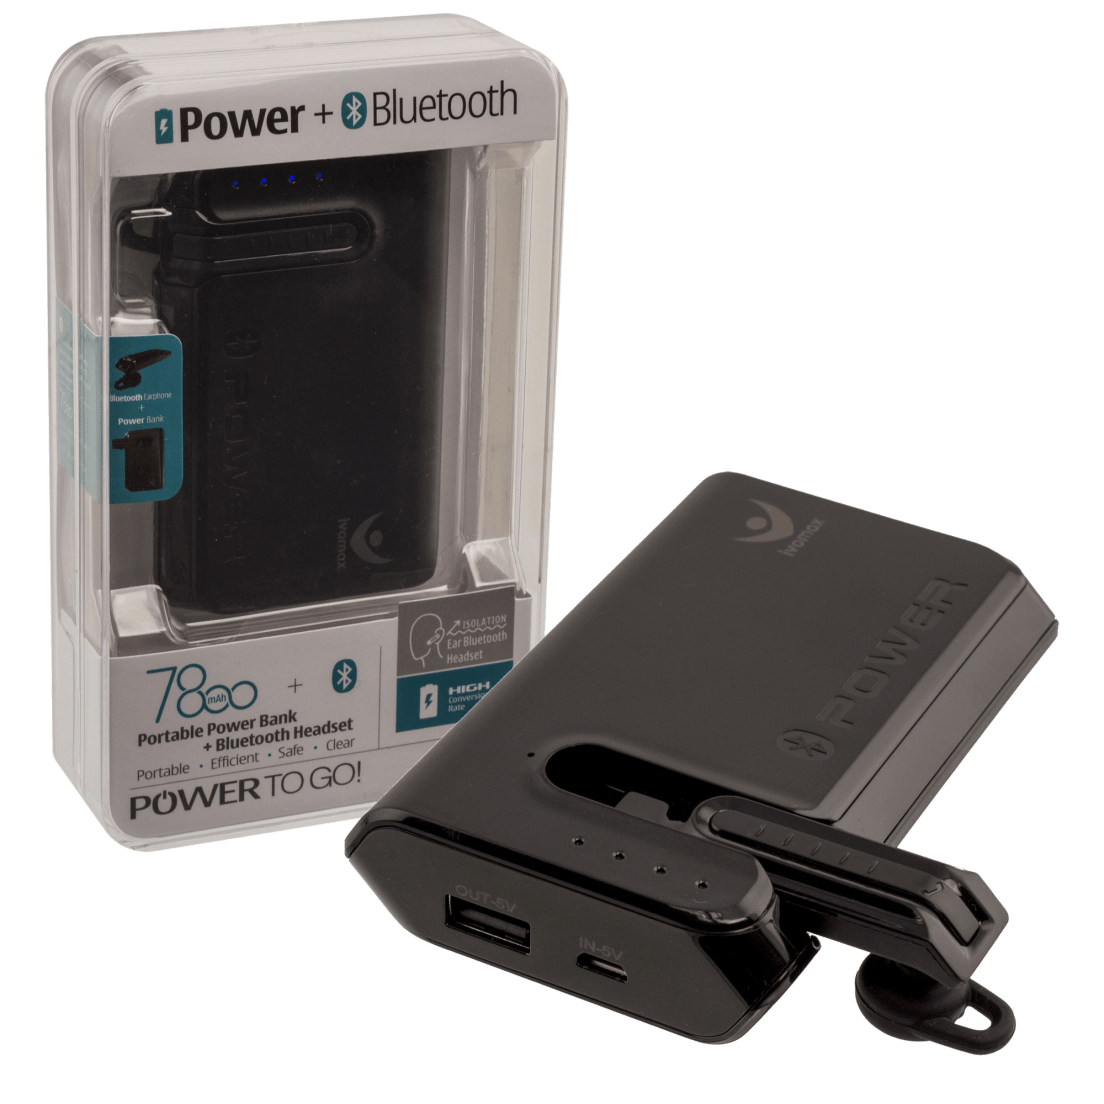 Ivomax 2 In 1 7800mah Power Bank With Integrated Bluetooth Headset